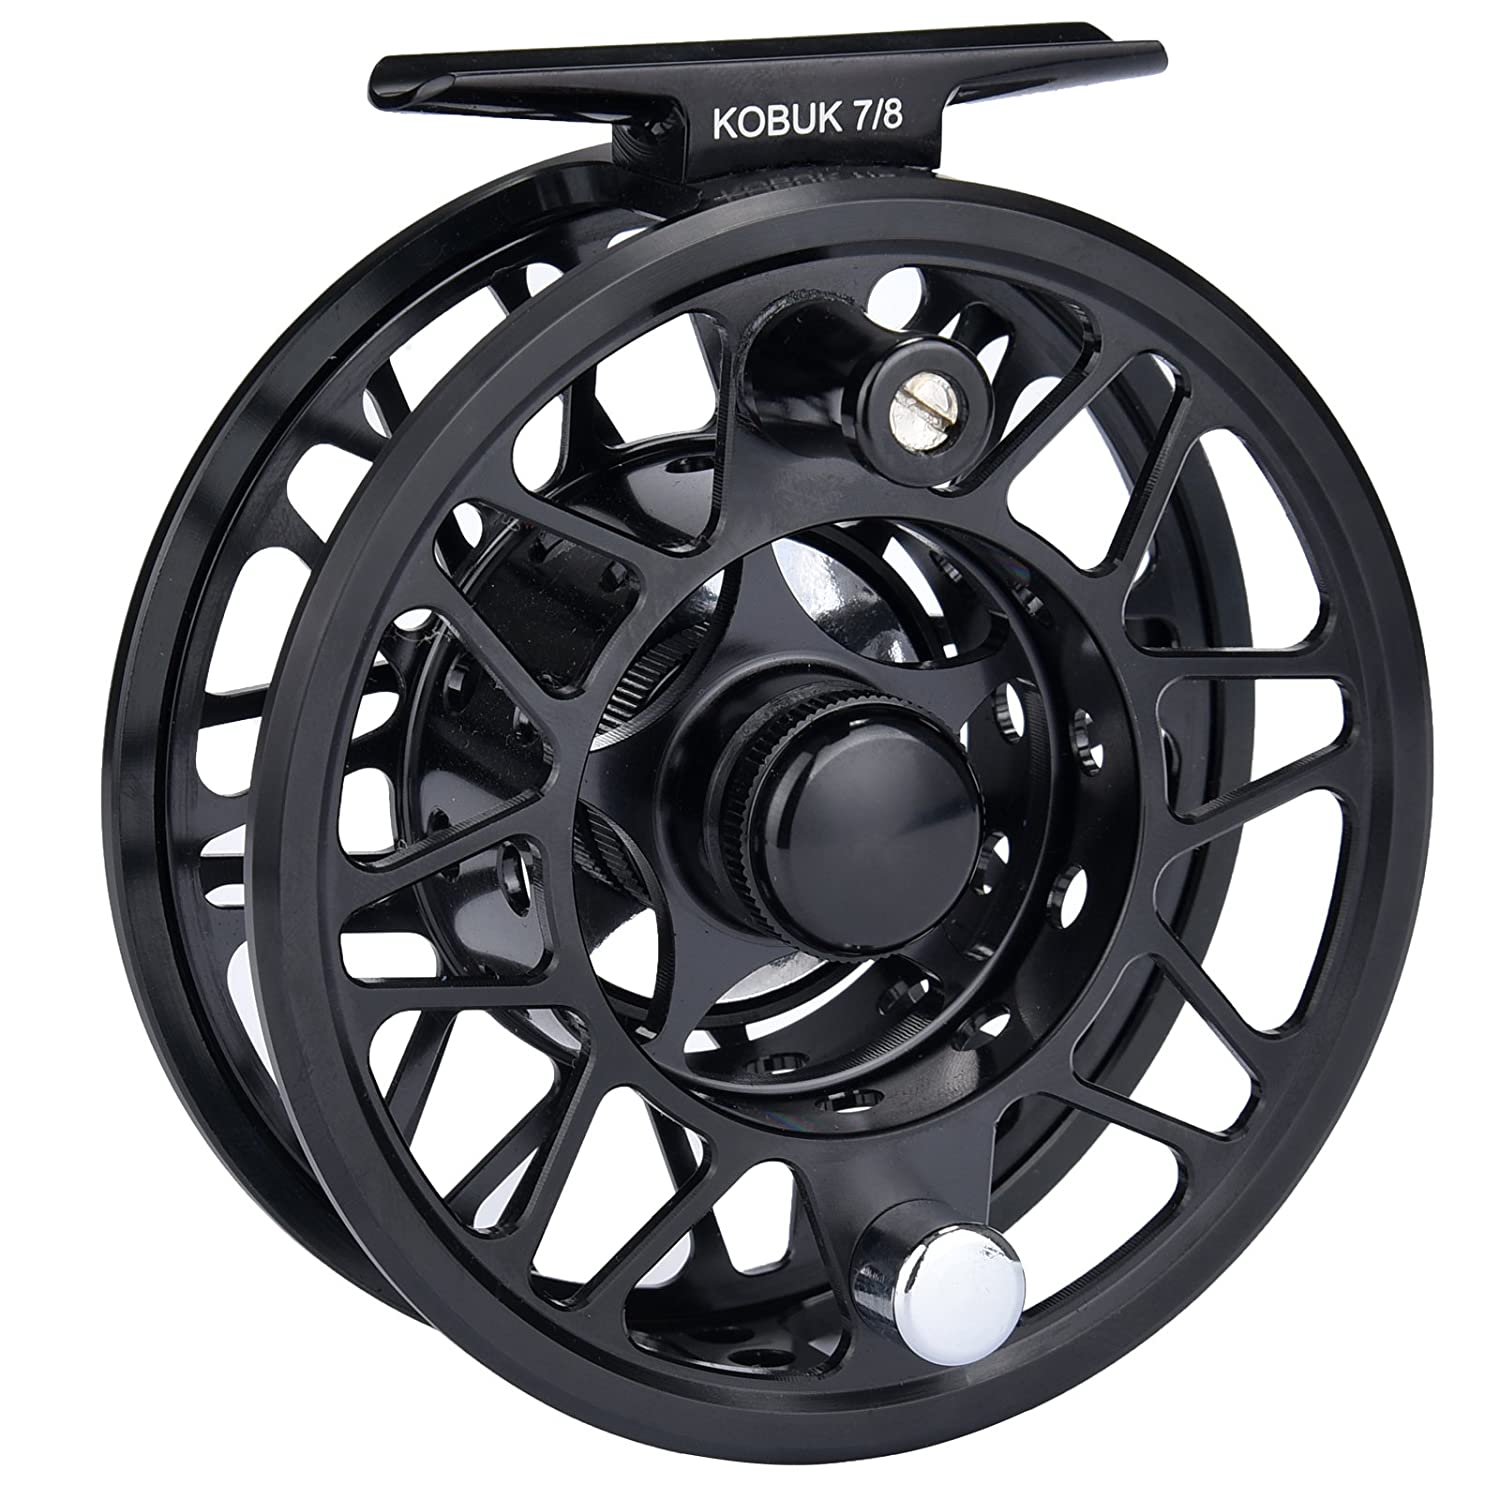 KastKing Kobuk Fly Fishing Reel with Large Arbor, CNC machined T6061 Aluminum Alloy Body and Spool in Fly Reel Sizes 3/4, 5/6, 7/8, 9/10